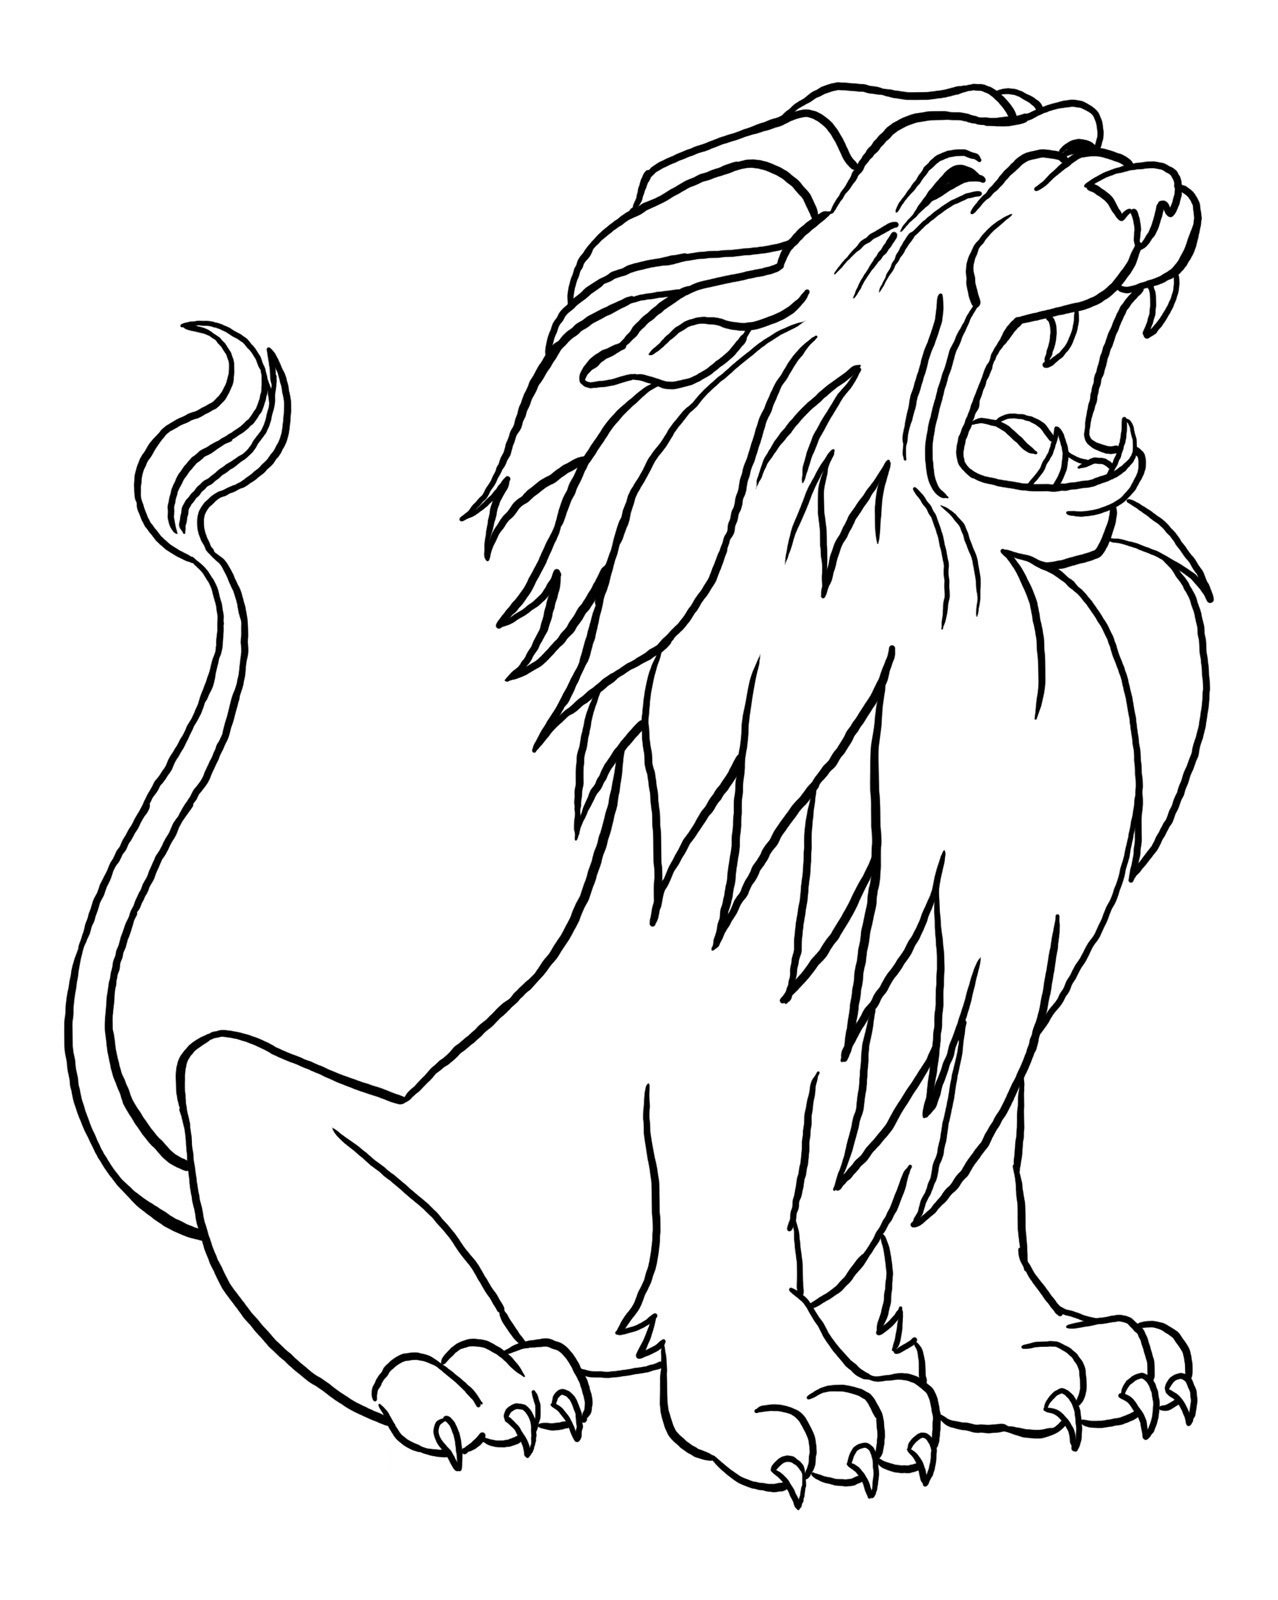 lion coloring pages kids - Colouring Pages For Kids